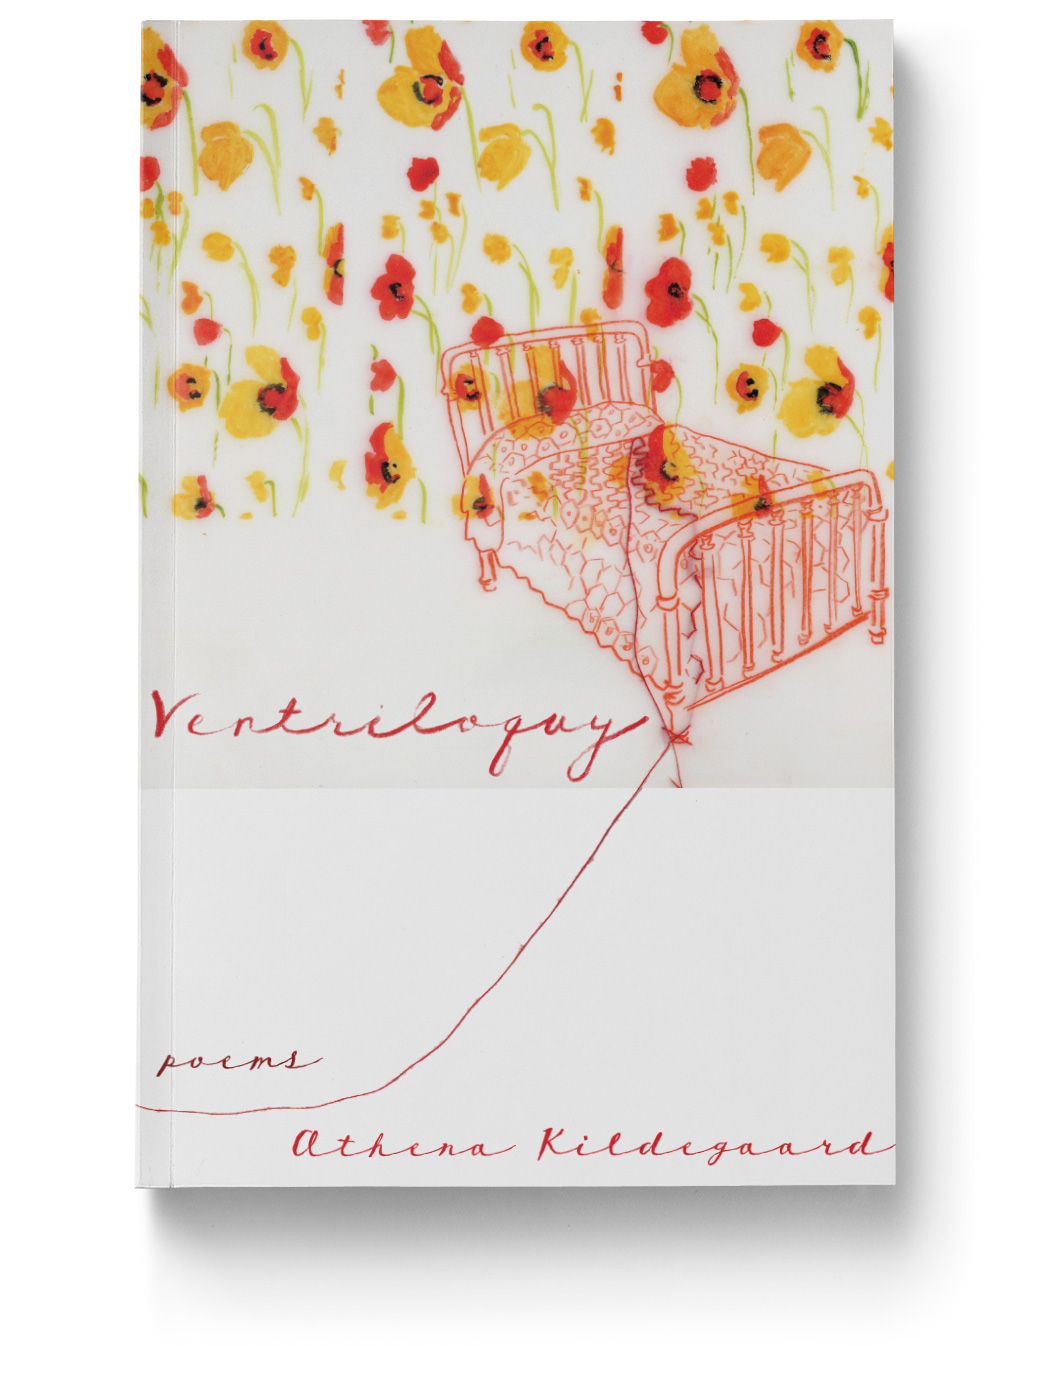 Cover Design for Ventriloquy by Athena Kildegaard for Tinderbox Editions